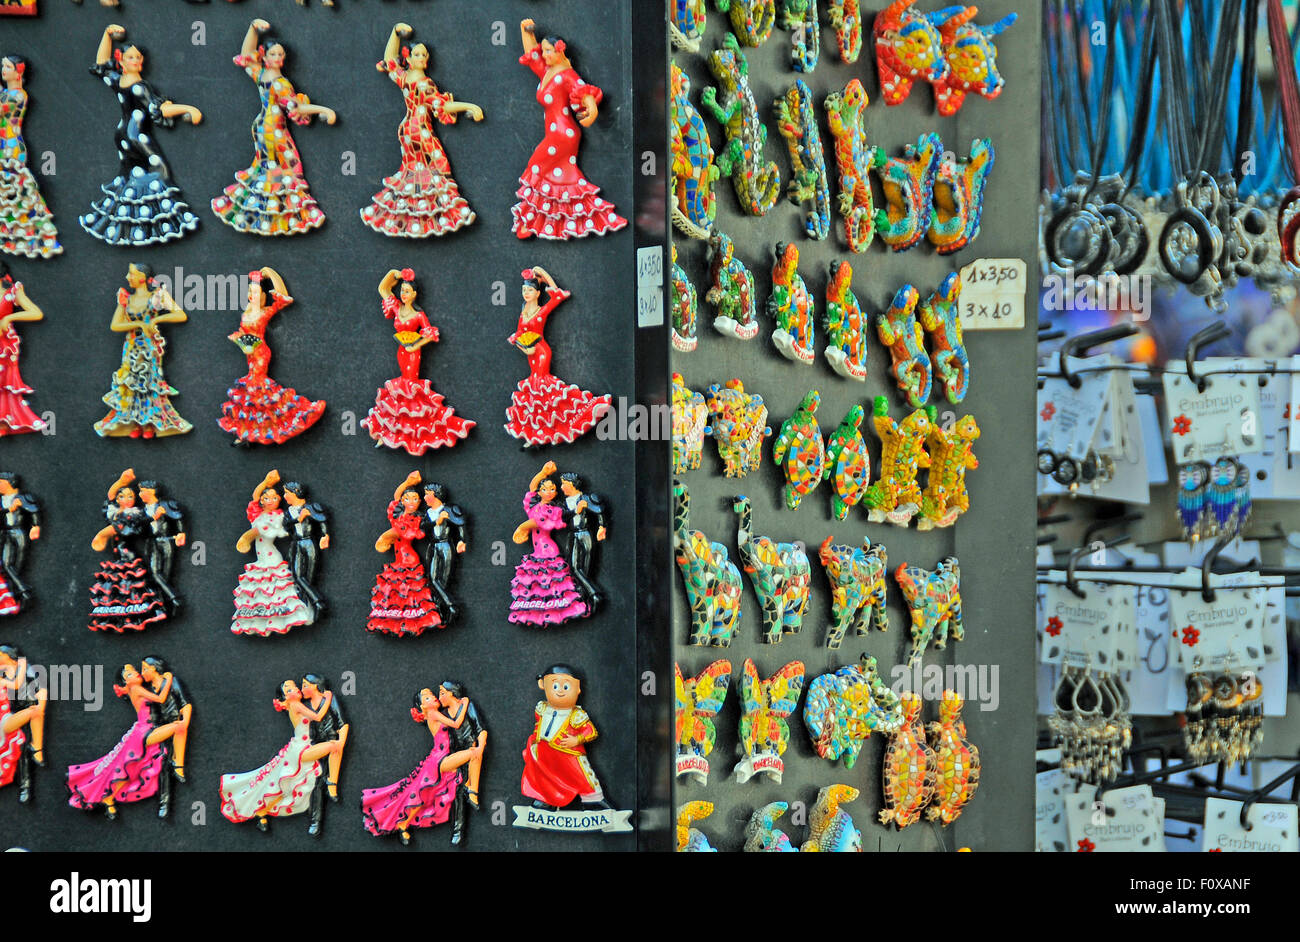 Souvenirs stall with fridge magnets on a stall at La Ramblas, Barcelona Spain - Stock Image